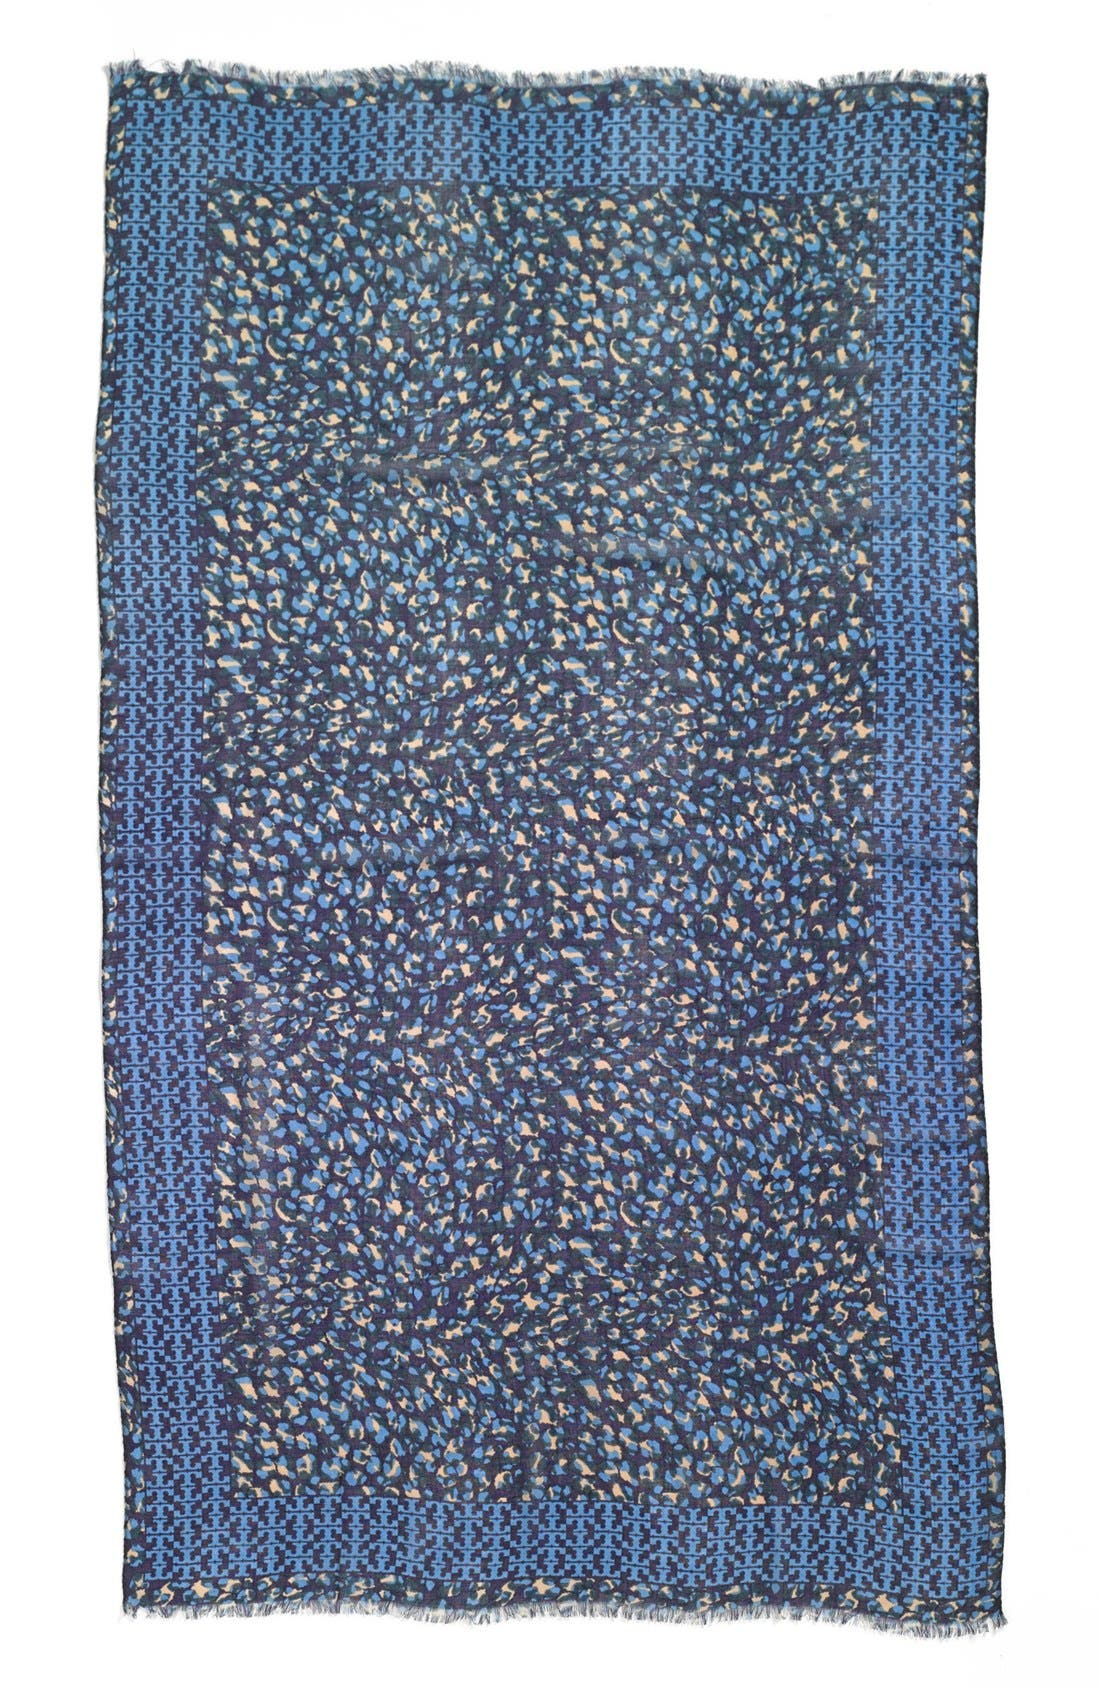 'Panthra - Small T' Wool Scarf,                             Alternate thumbnail 2, color,                             400